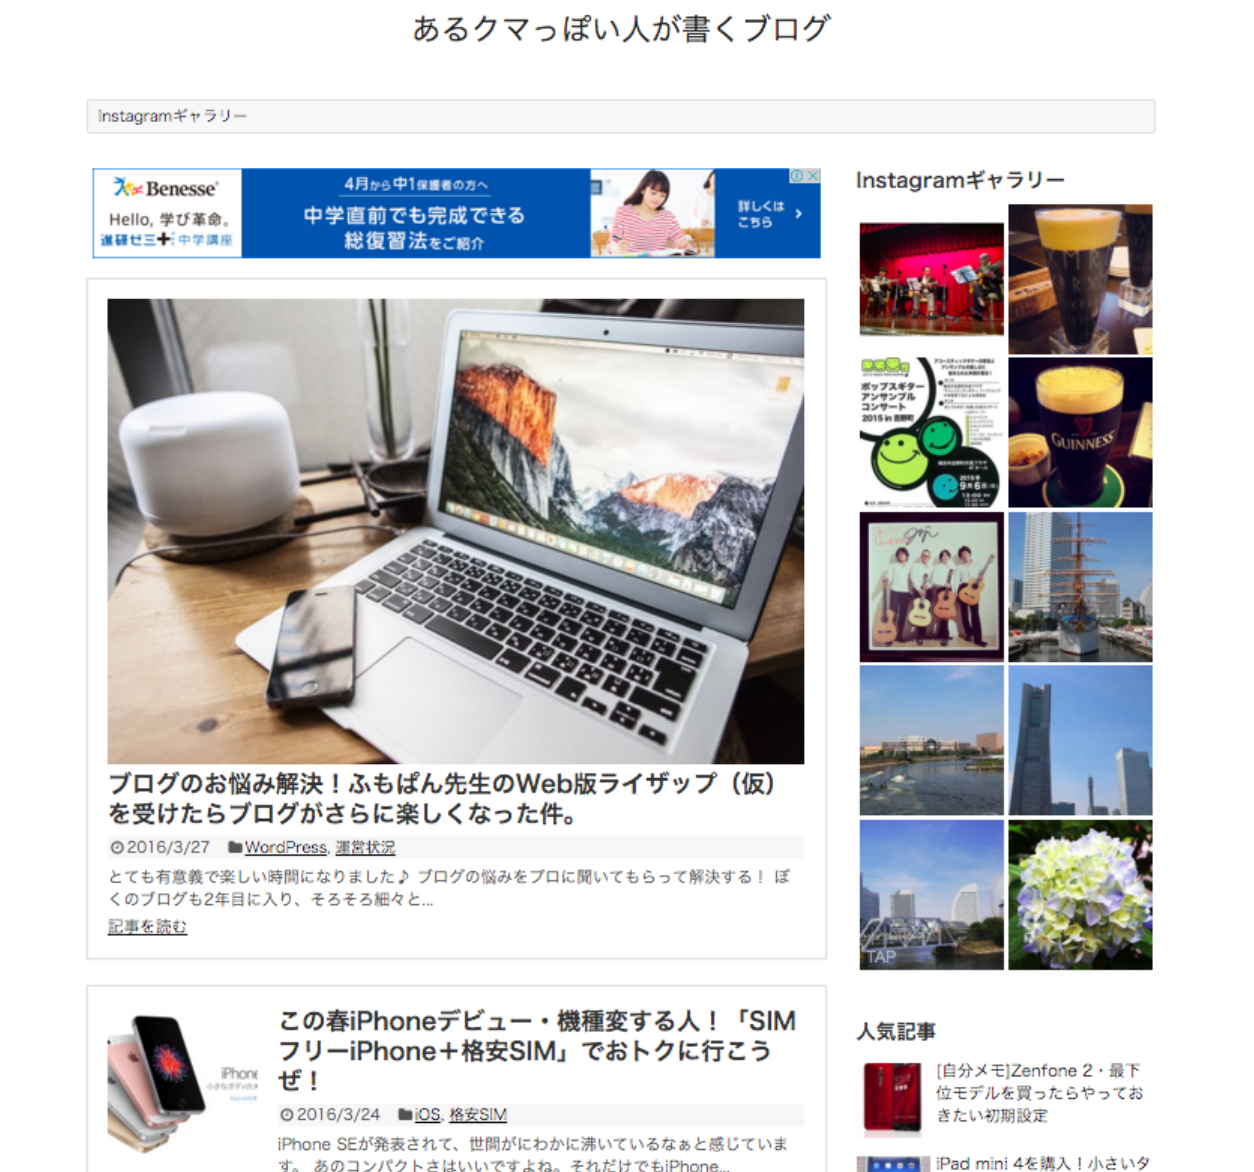 screenshot-yasumihirotaka.com 2016-03-28 02-03-16new1